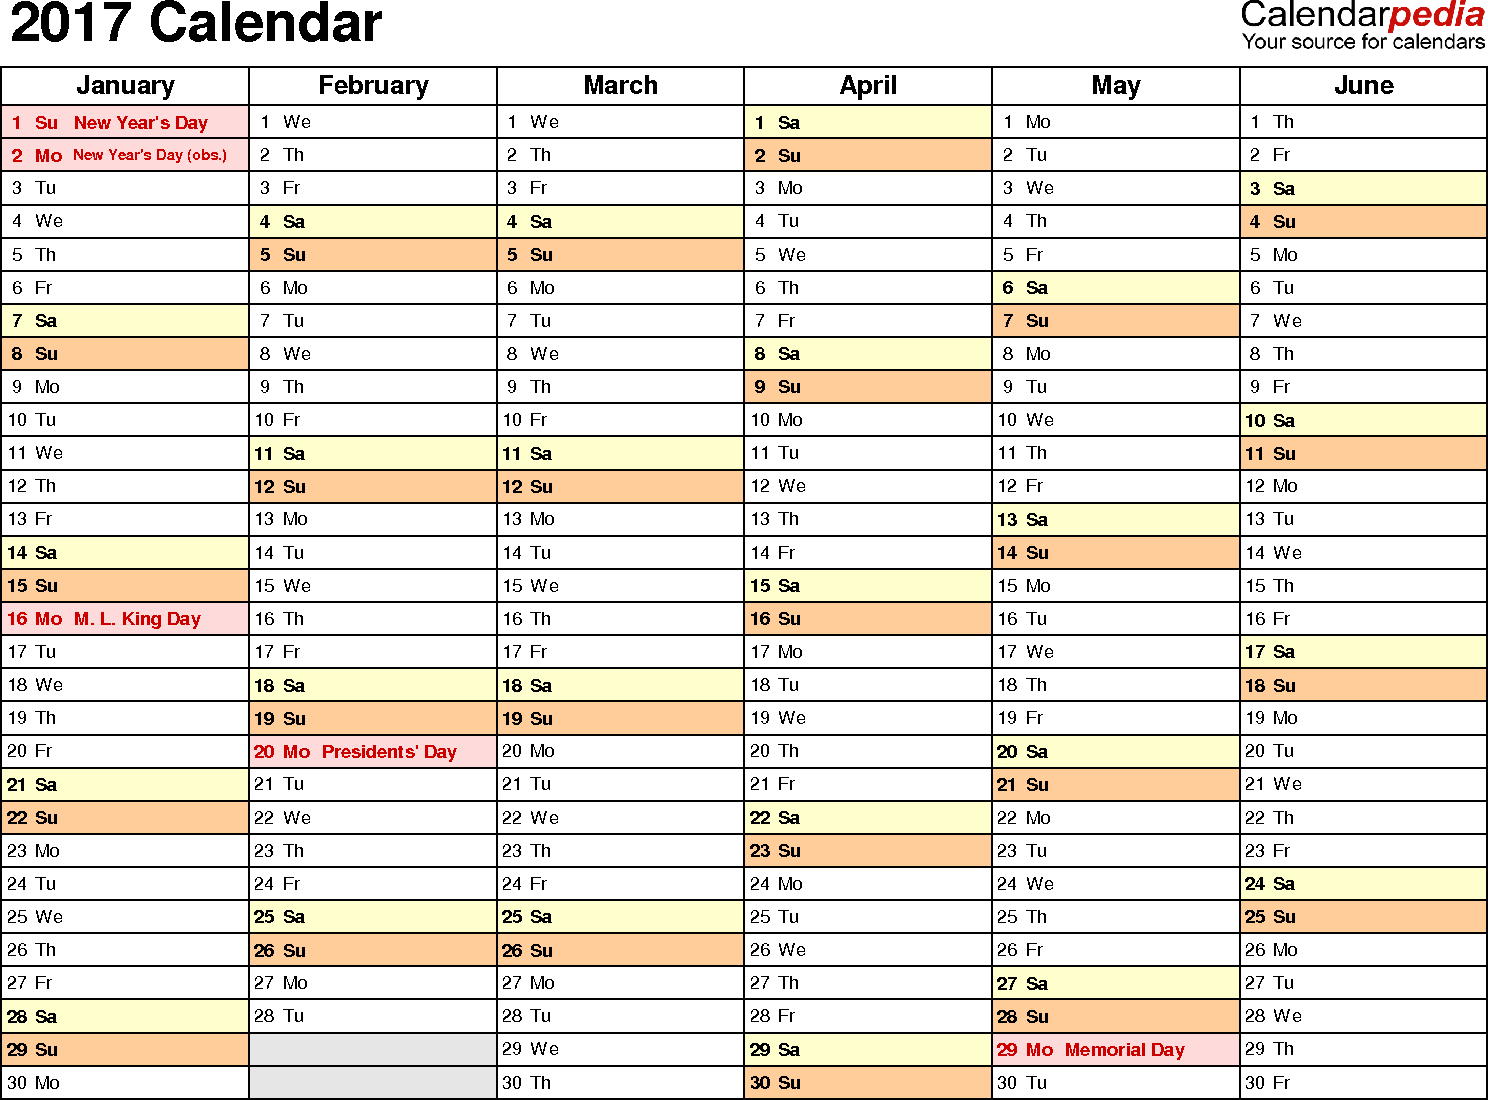 Ediblewildsus  Remarkable  Calendar  Download  Free Printable Excel Templates Xls With Marvelous Template   Calendar For Excel Months Horizontally  Pages Landscape Orientation With Agreeable Insert Dropdown In Excel Also How To Insert A Header In Excel In Addition Burndown Chart Excel And Add Days To Date Excel As Well As Excel Sumproduct If Additionally Excel Vba Screenupdating From Calendarpediacom With Ediblewildsus  Marvelous  Calendar  Download  Free Printable Excel Templates Xls With Agreeable Template   Calendar For Excel Months Horizontally  Pages Landscape Orientation And Remarkable Insert Dropdown In Excel Also How To Insert A Header In Excel In Addition Burndown Chart Excel From Calendarpediacom